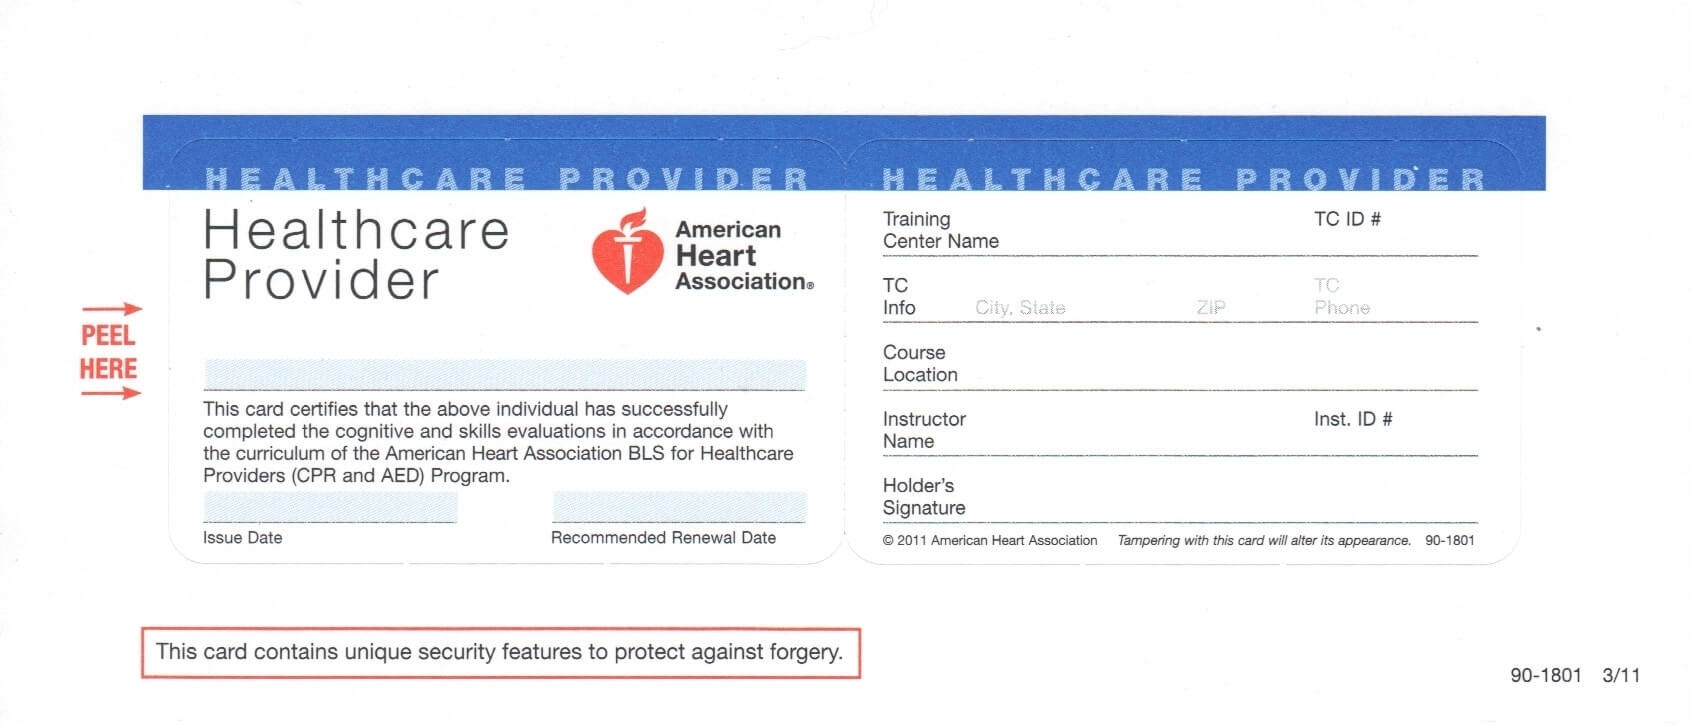 Cpr Card Template - Cumed With Regard To Cpr Card Template